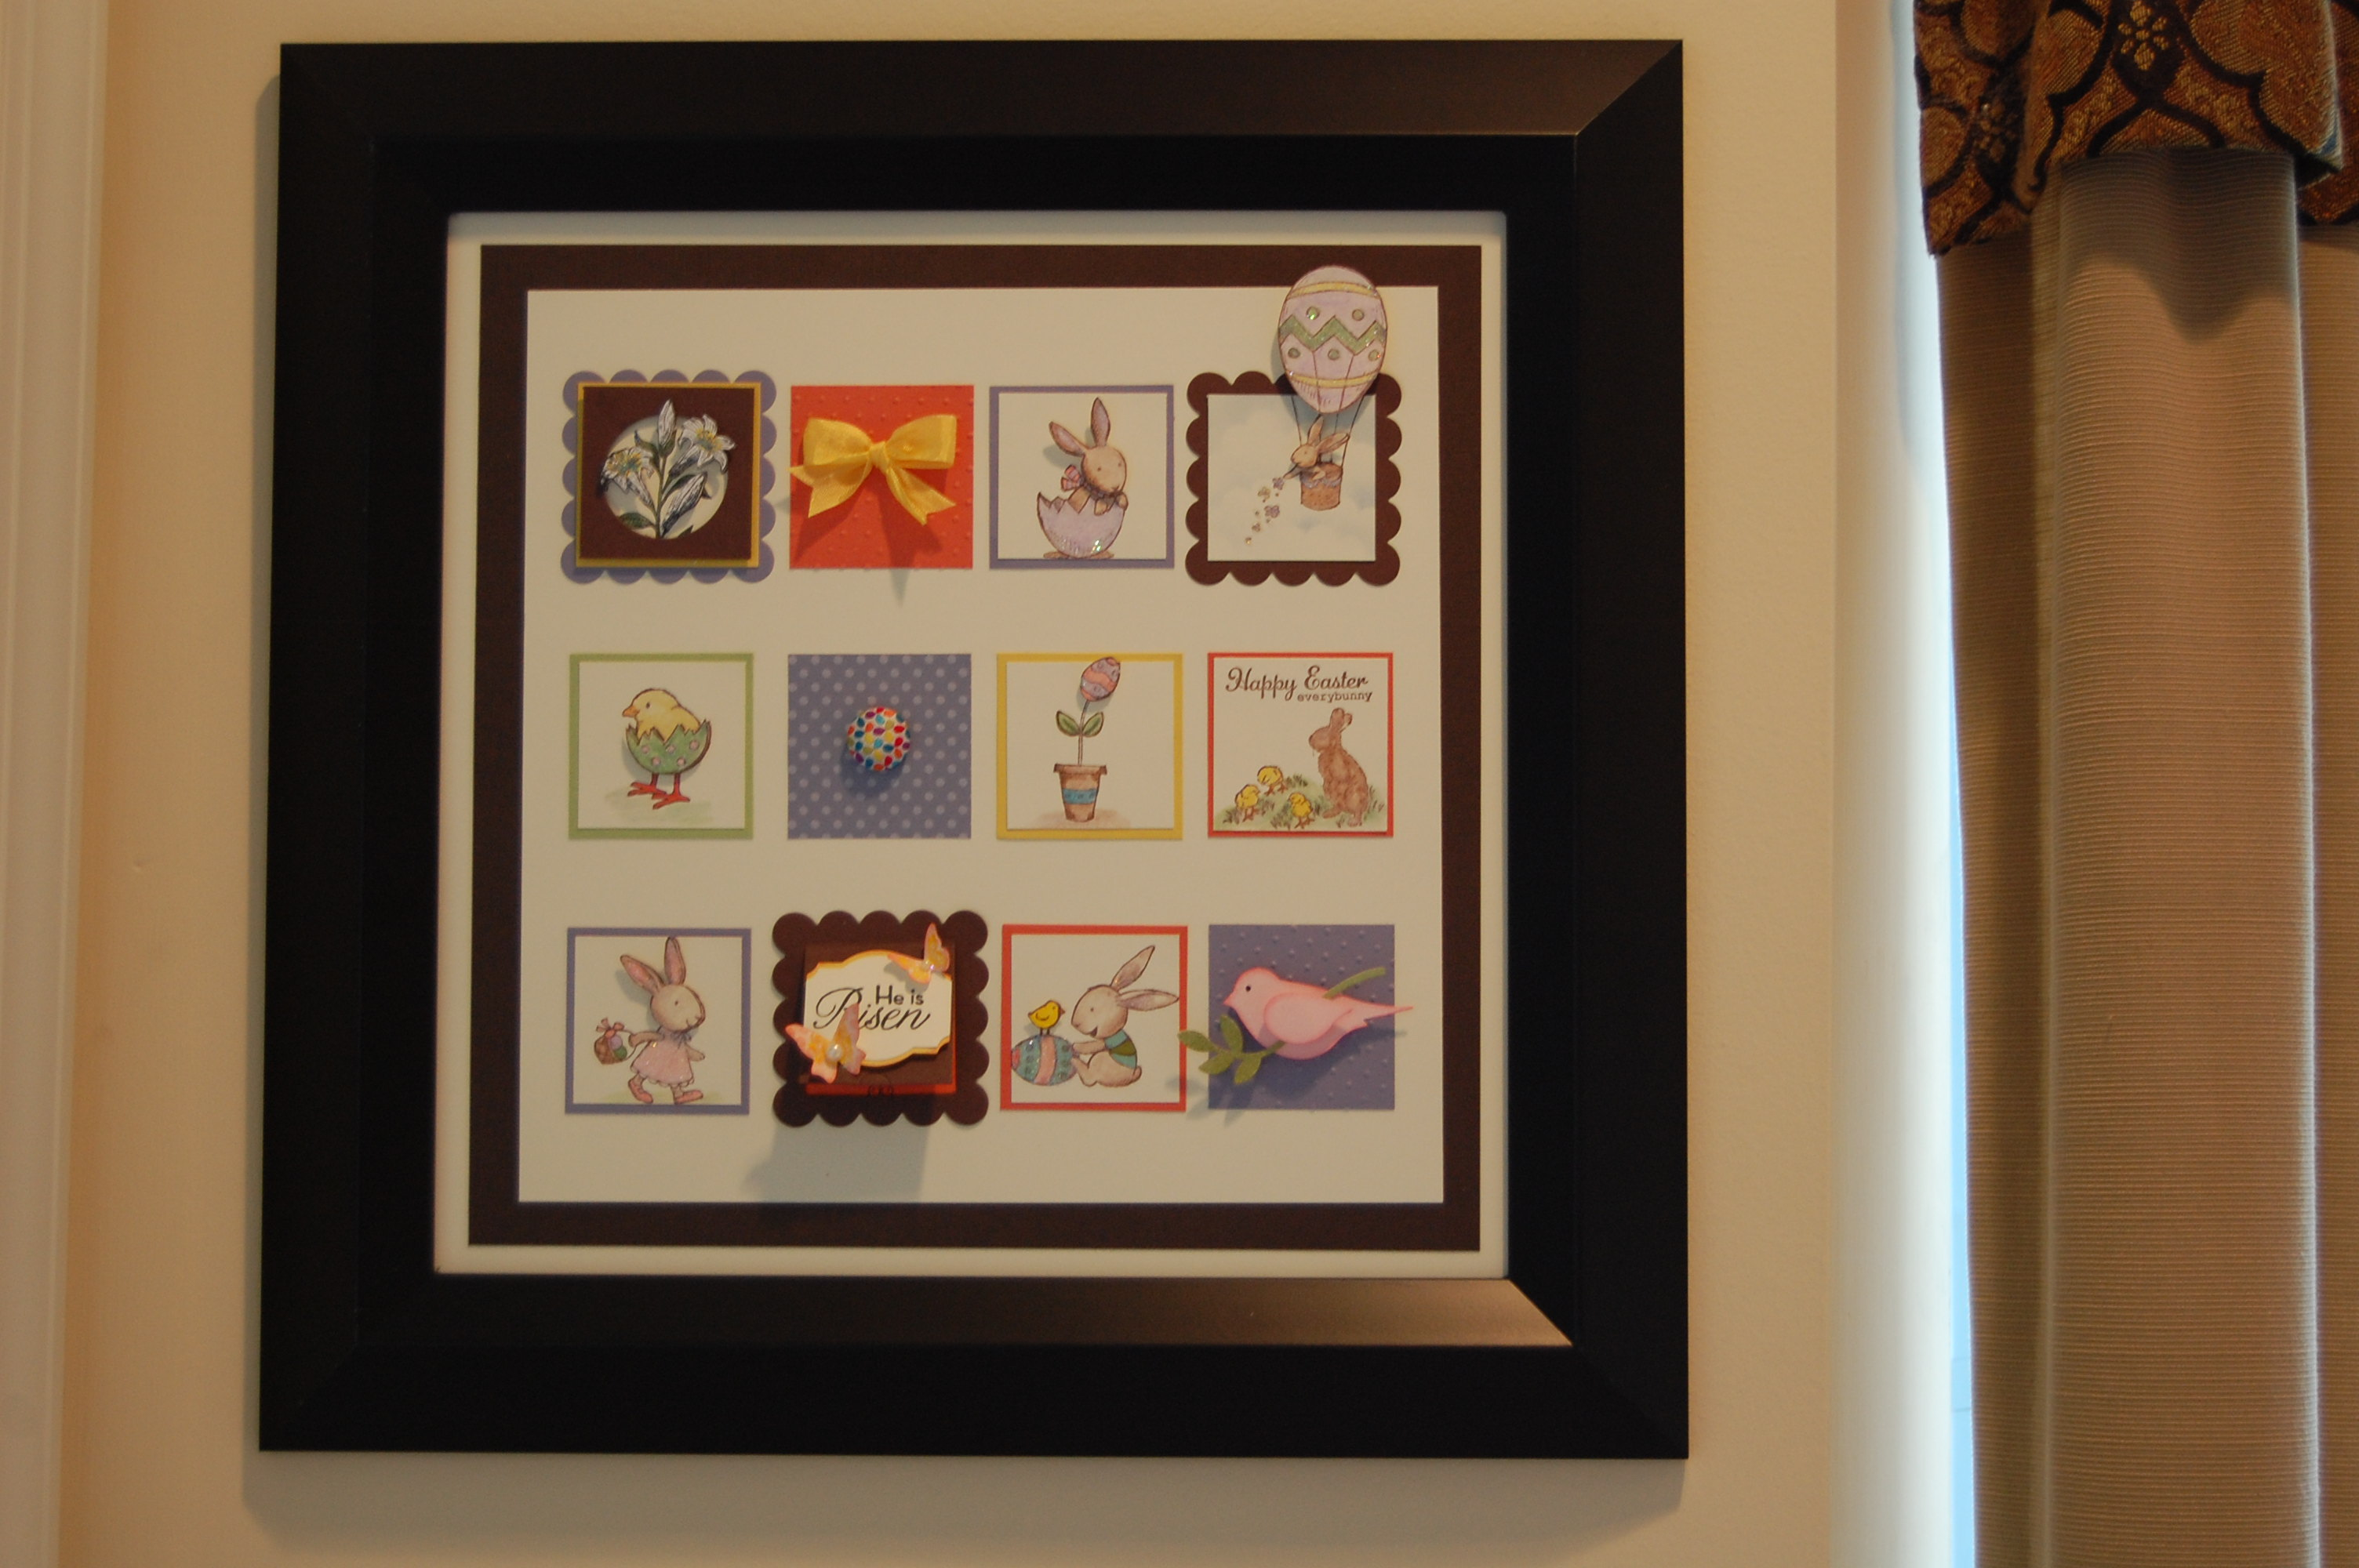 1000 images about spring 12x12 on pinterest printer tray shadow frame and pep rally. Black Bedroom Furniture Sets. Home Design Ideas